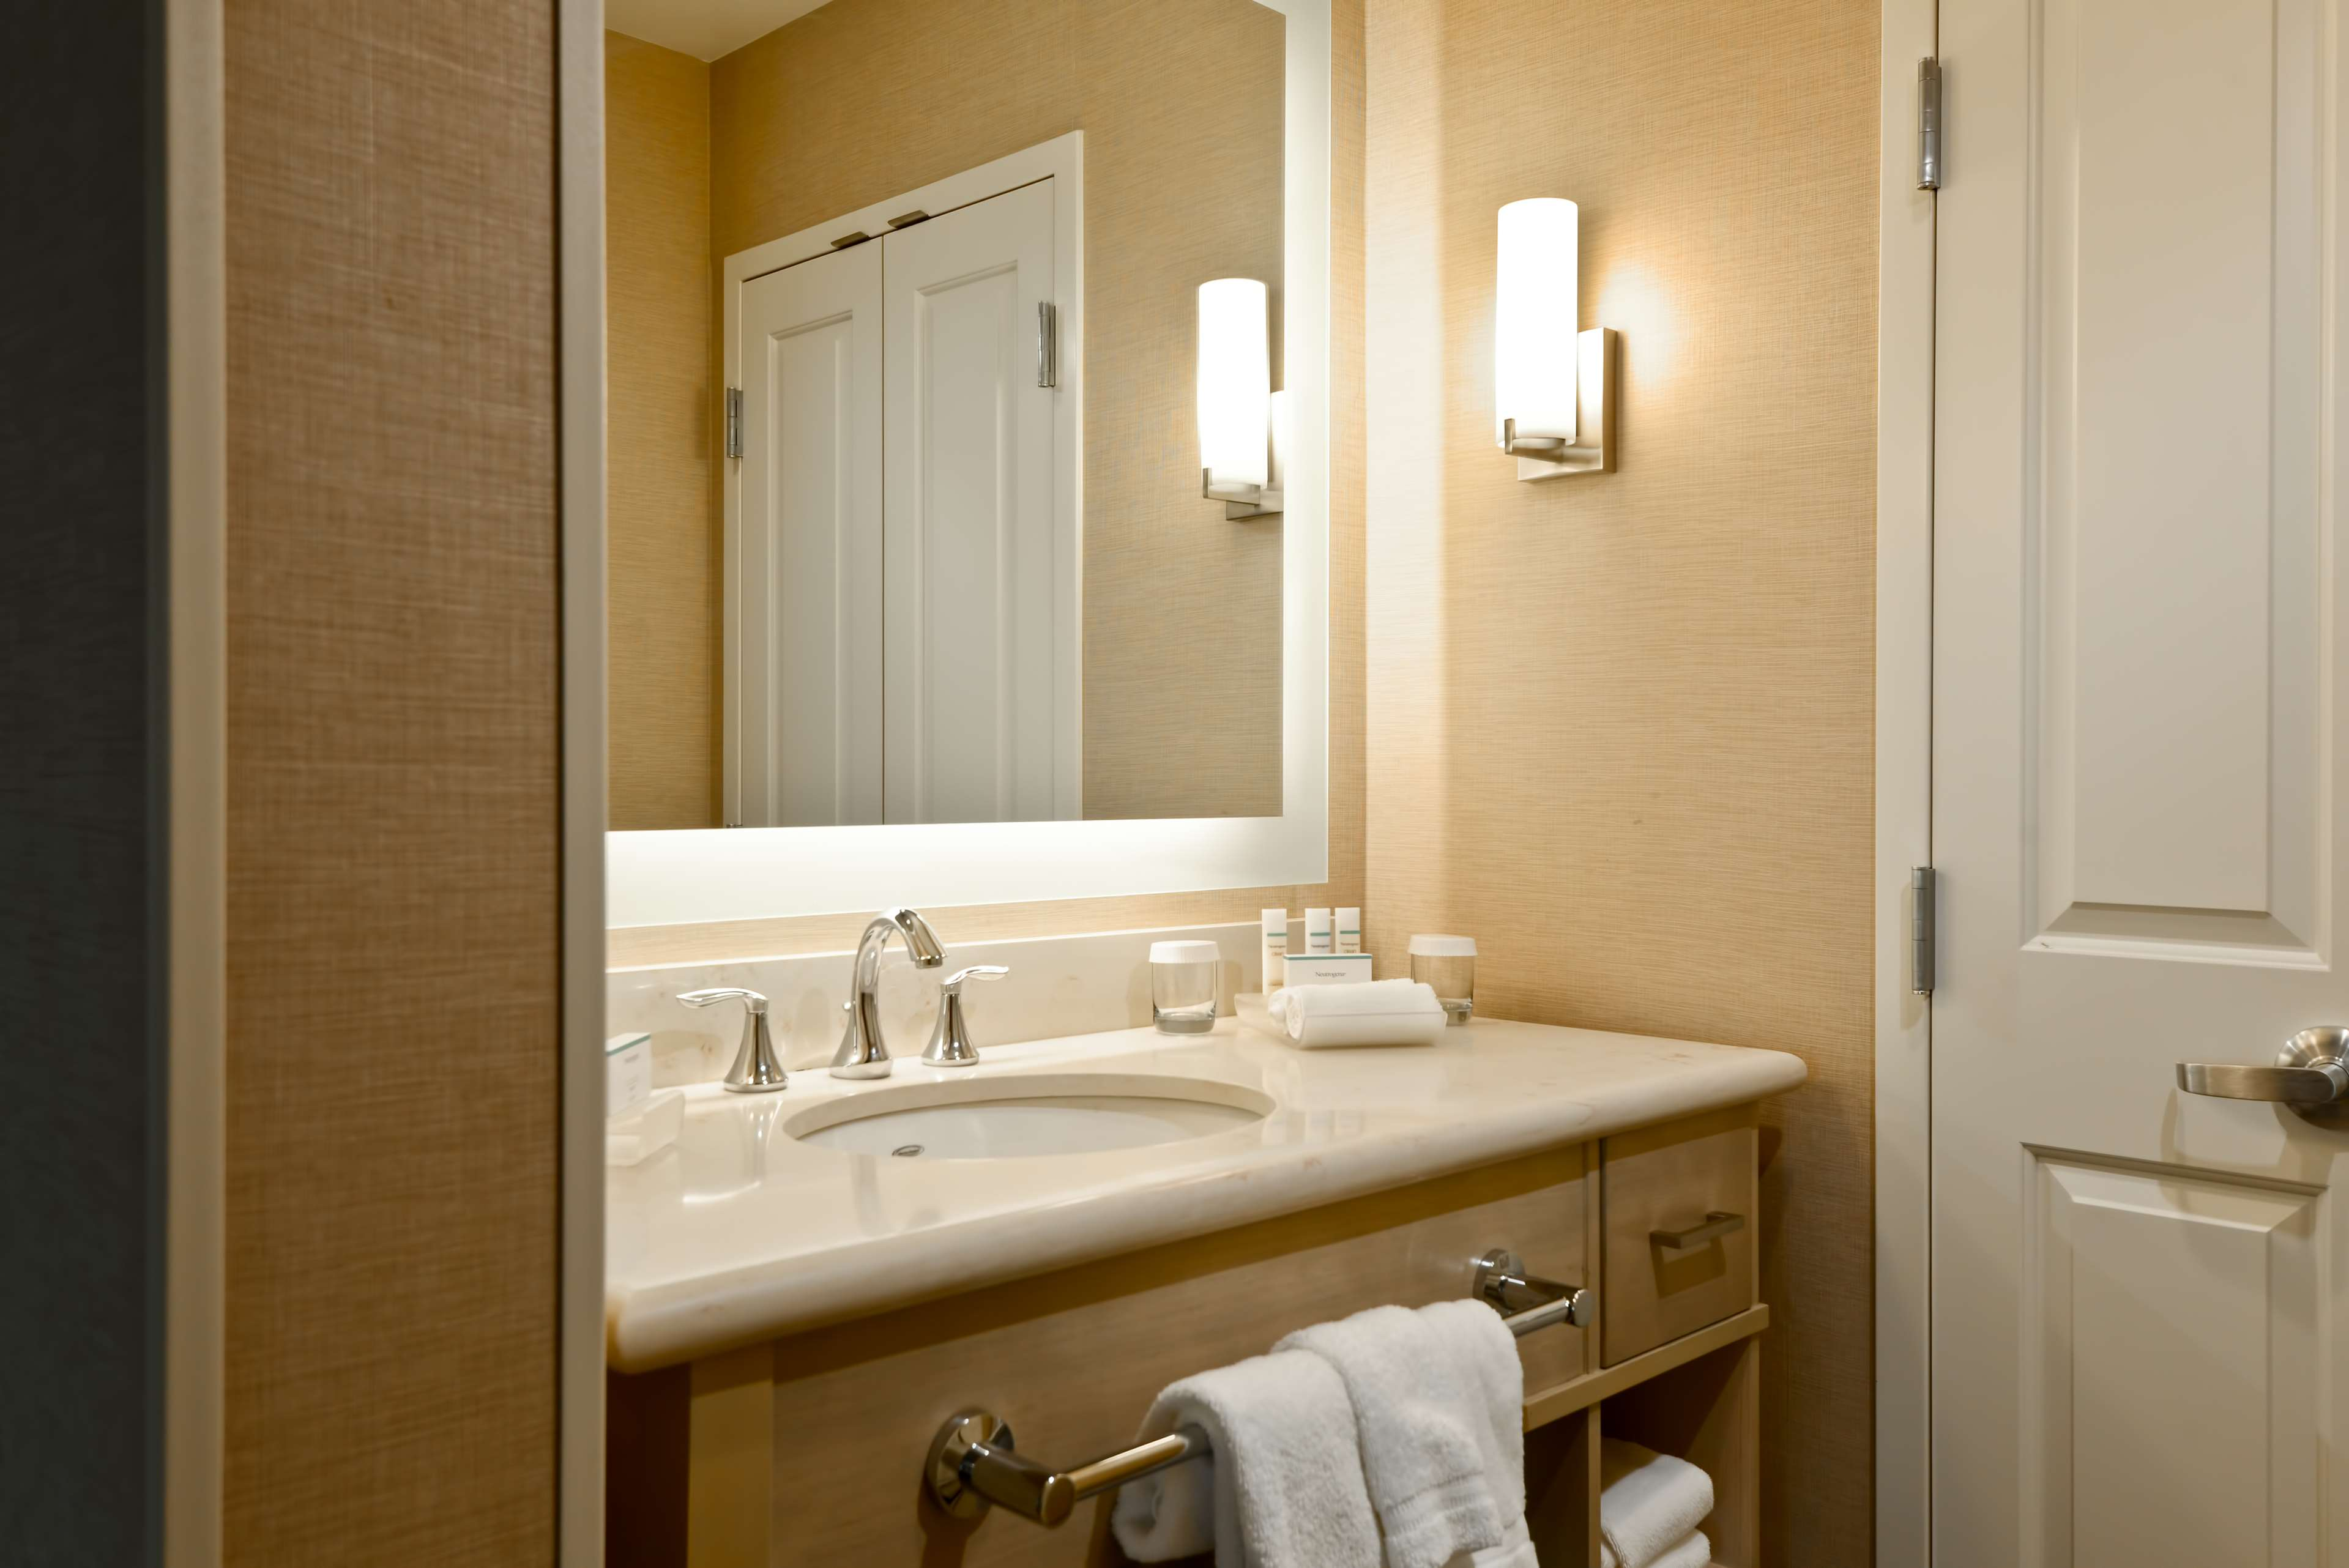 Homewood Suites by Hilton Anaheim Resort - Convention Center image 23